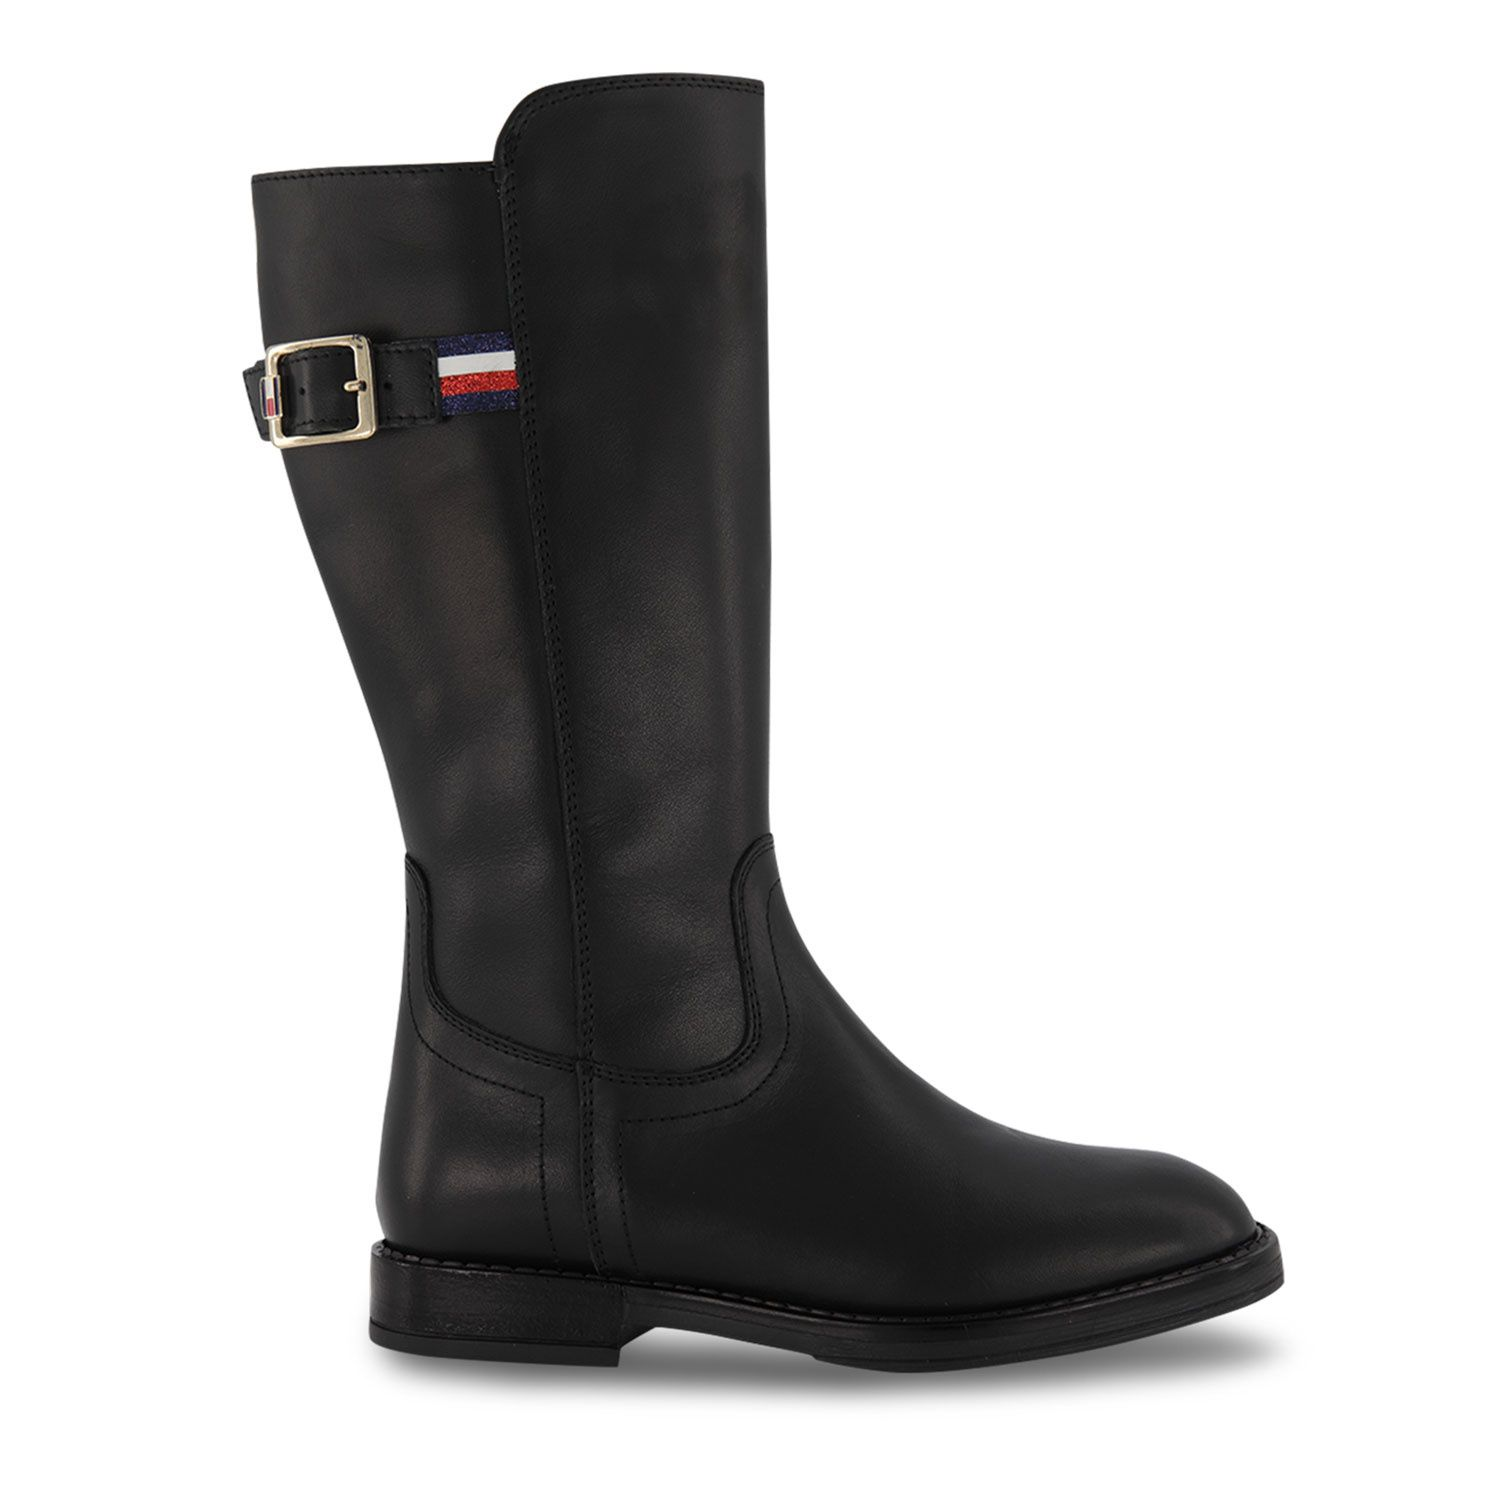 Picture of Tommy Hilfiger 32023 kids boots black